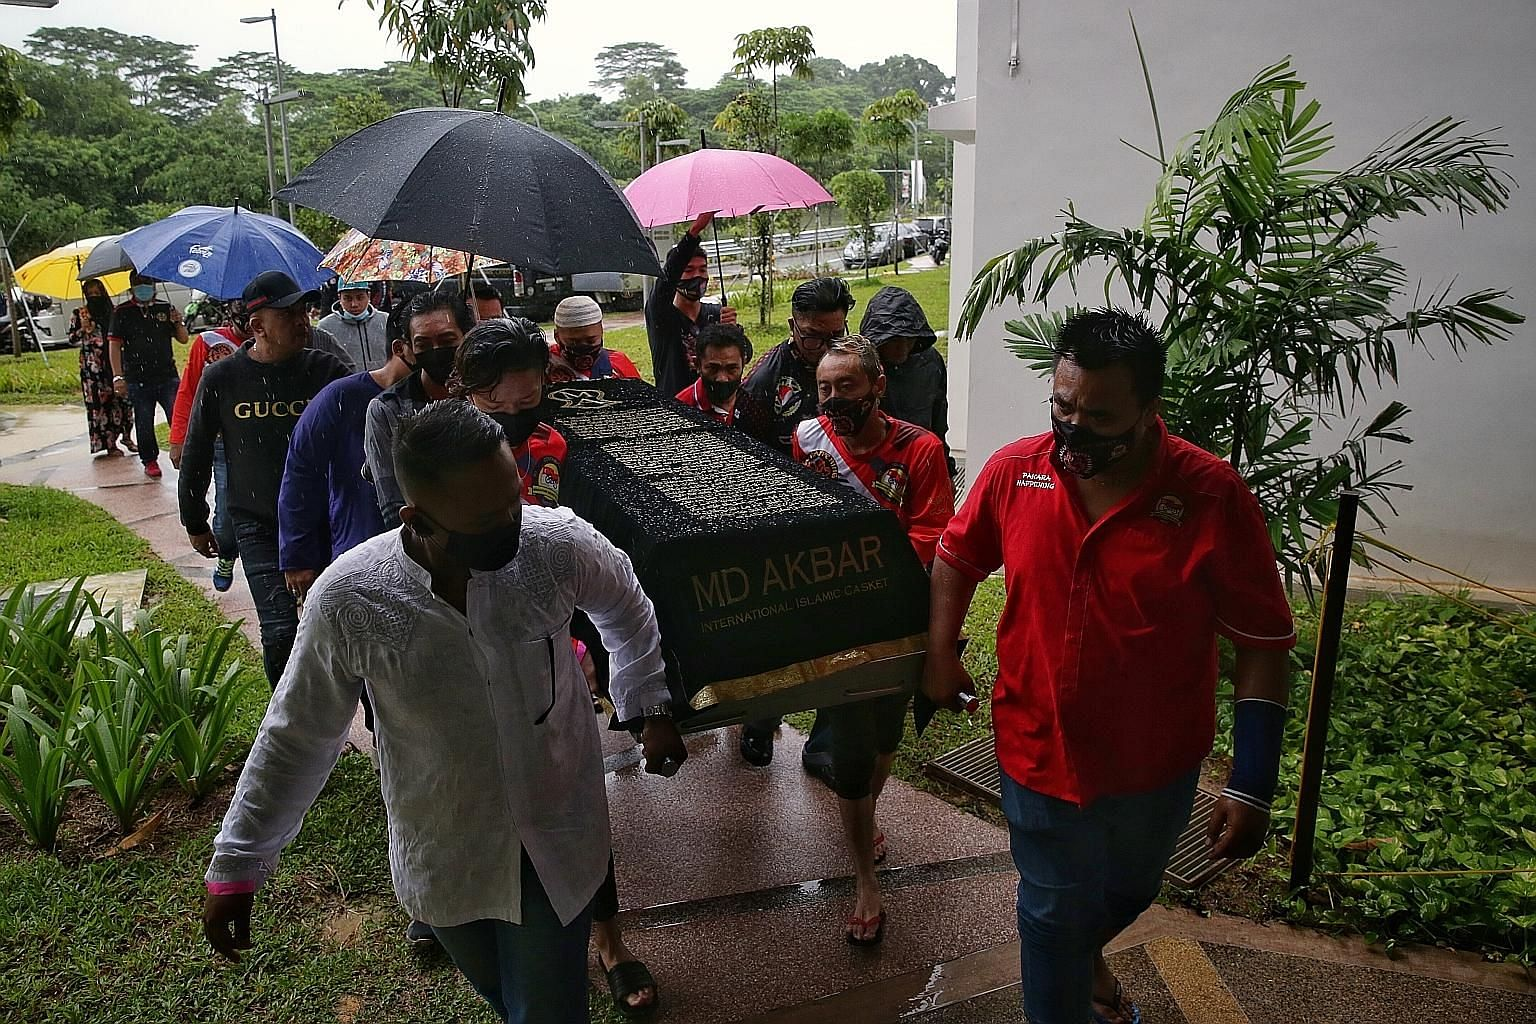 Friends and relatives carrying the body of Putera Muhammad Indra Shazrine Suzaini to his family in Yishun yesterday. Rescue divers had found the teenager 15m from the shore at Changi Beach Park last Saturday. He was later pronounced dead at the scene